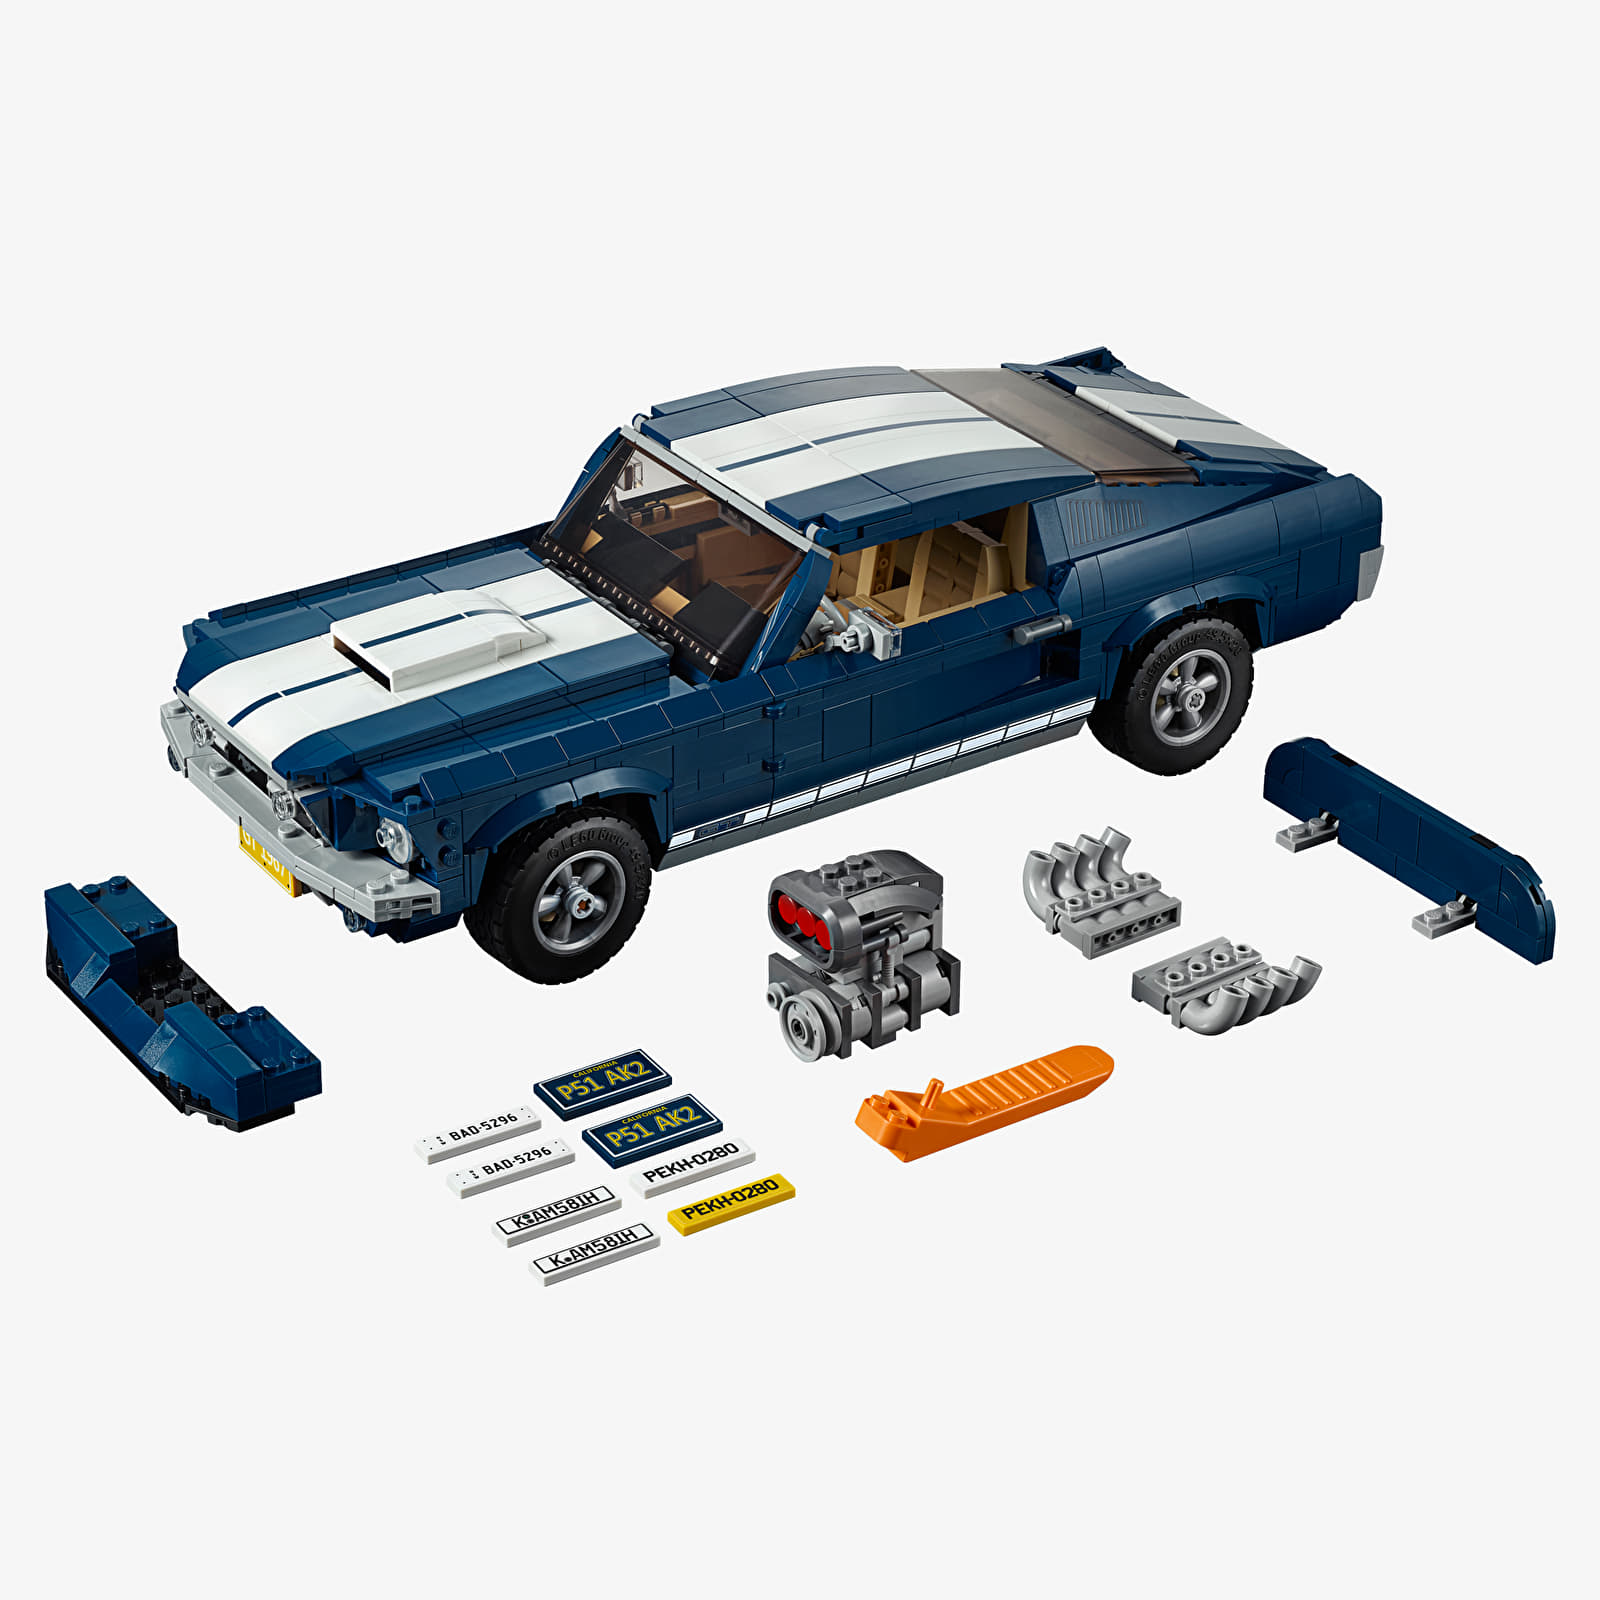 LEGO® Creator Expert 10265 Ford Mustang Universal